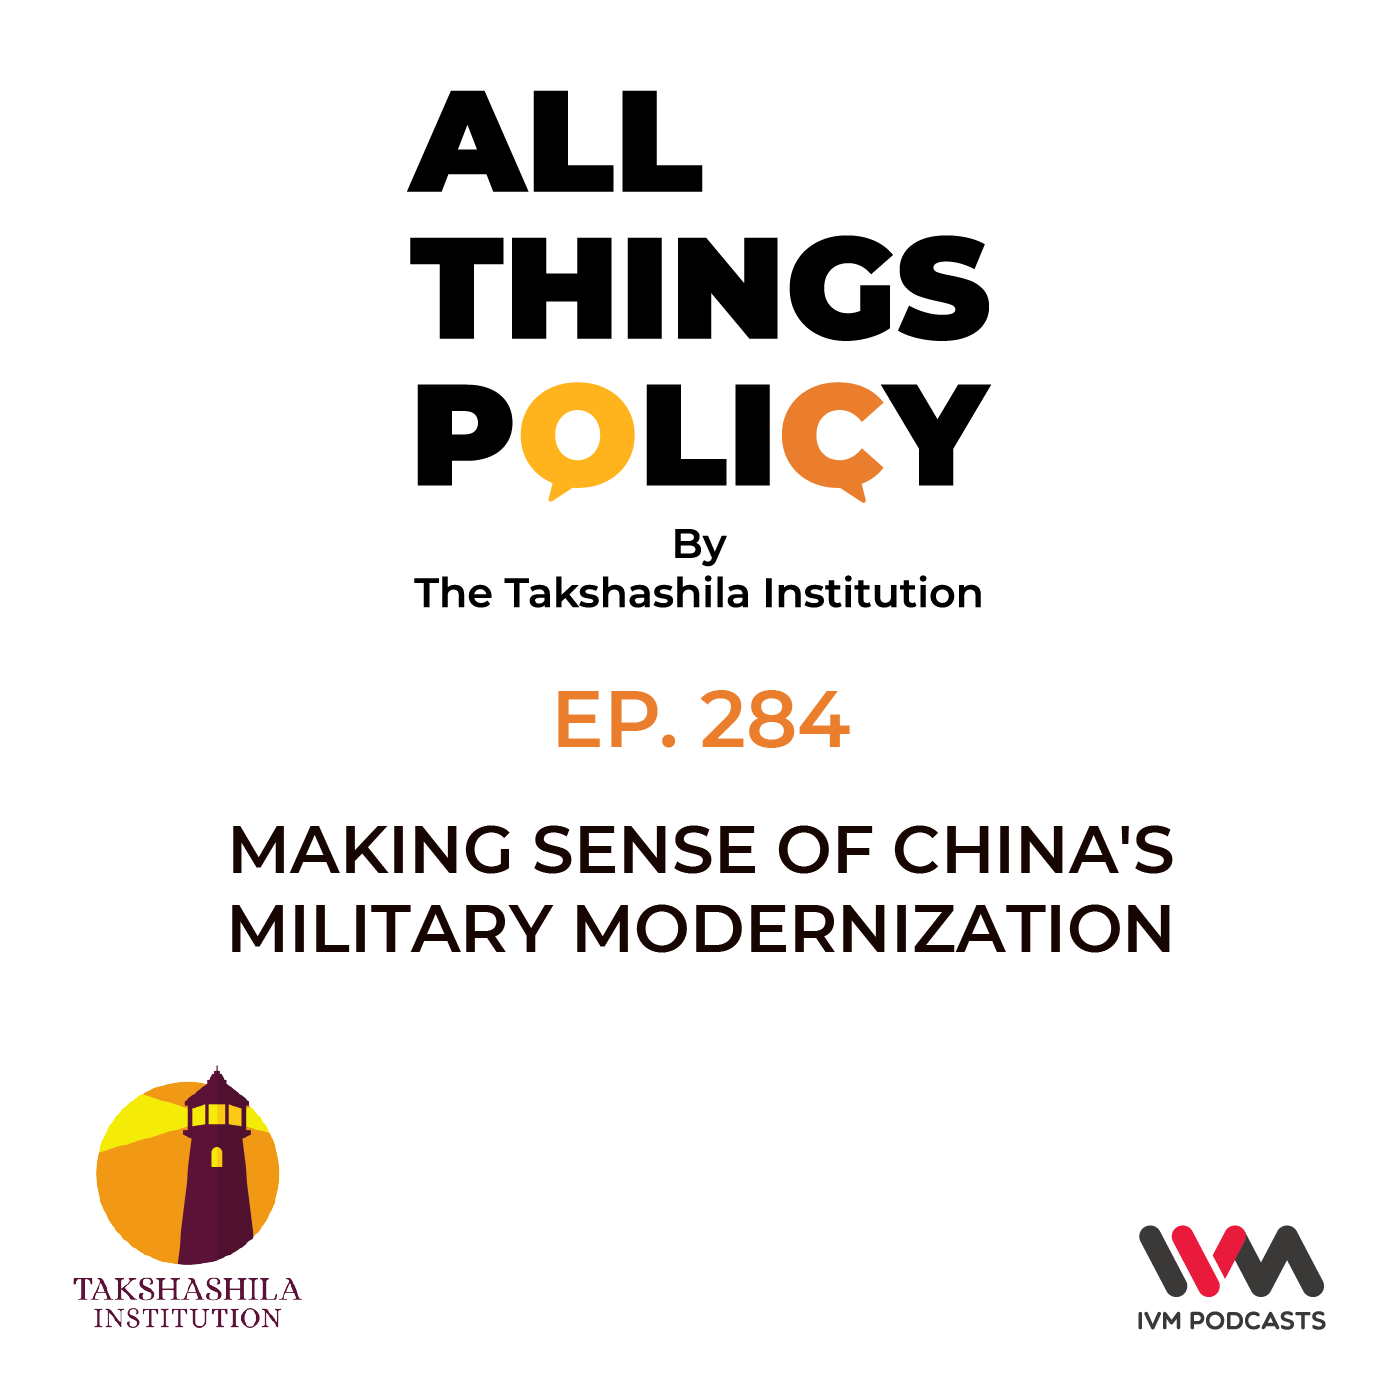 Ep. 284: Making Sense of China's Military Modernization